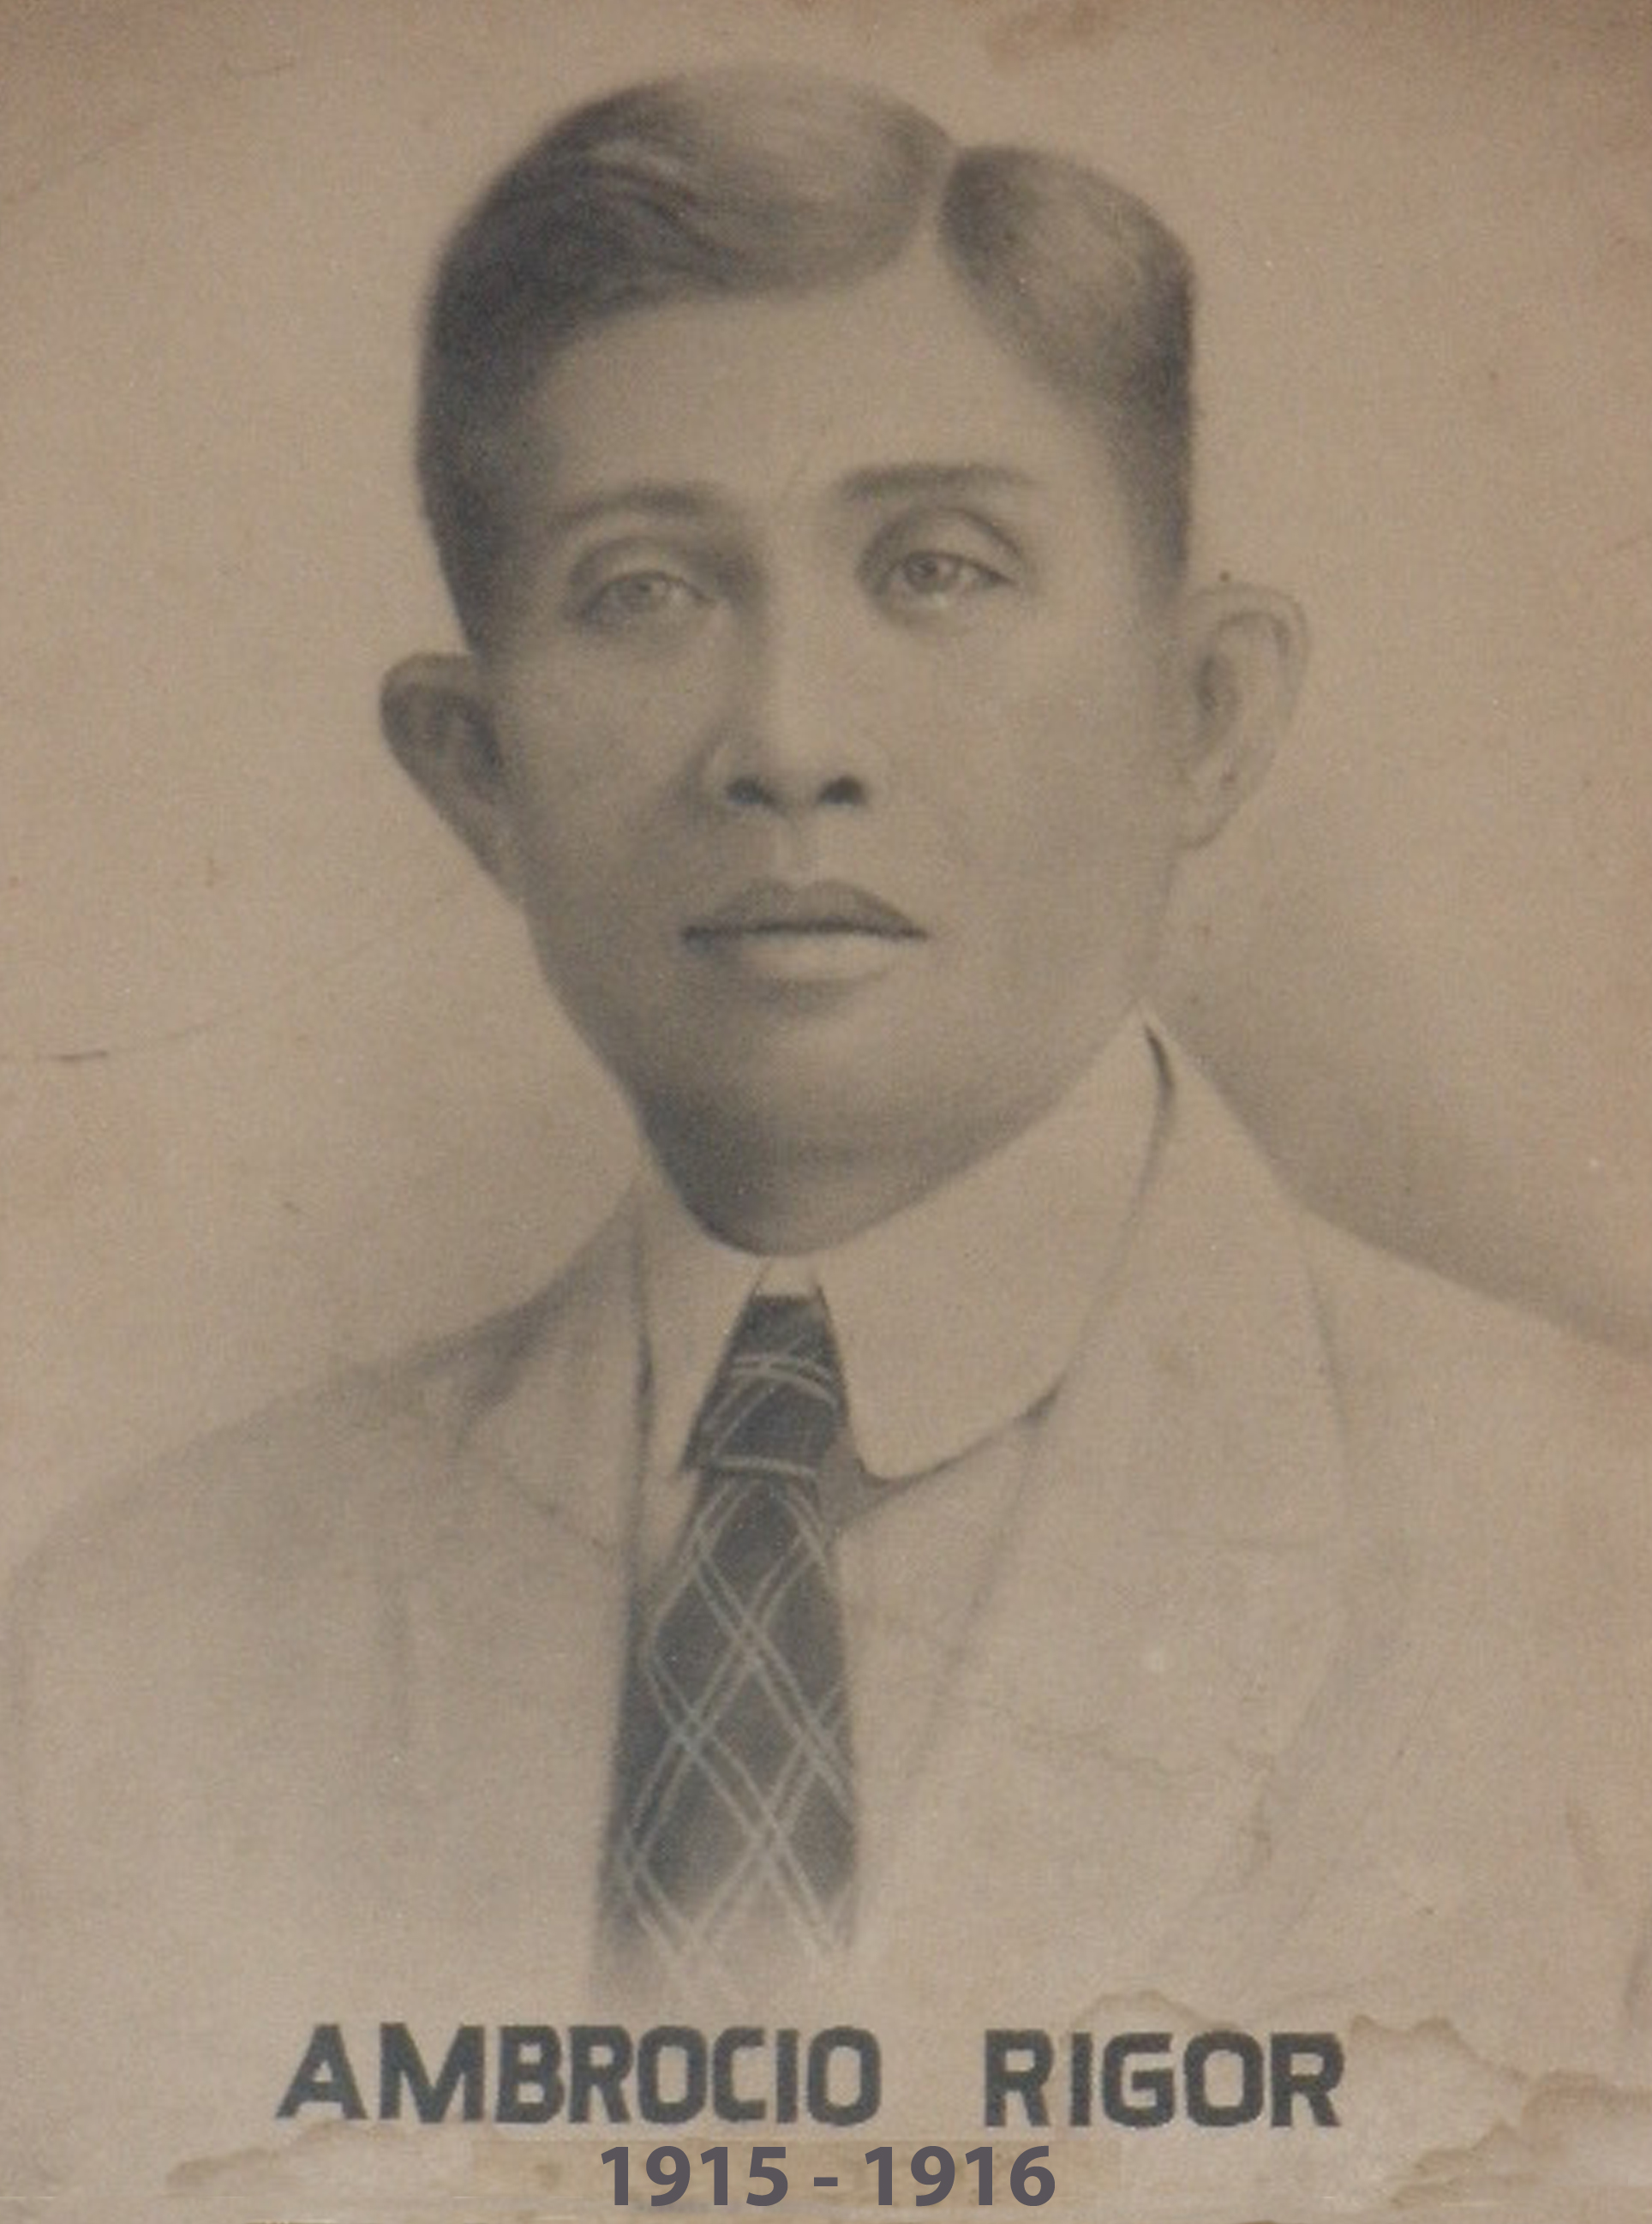 Mayor Ambrocio Rigor (1915-1916)